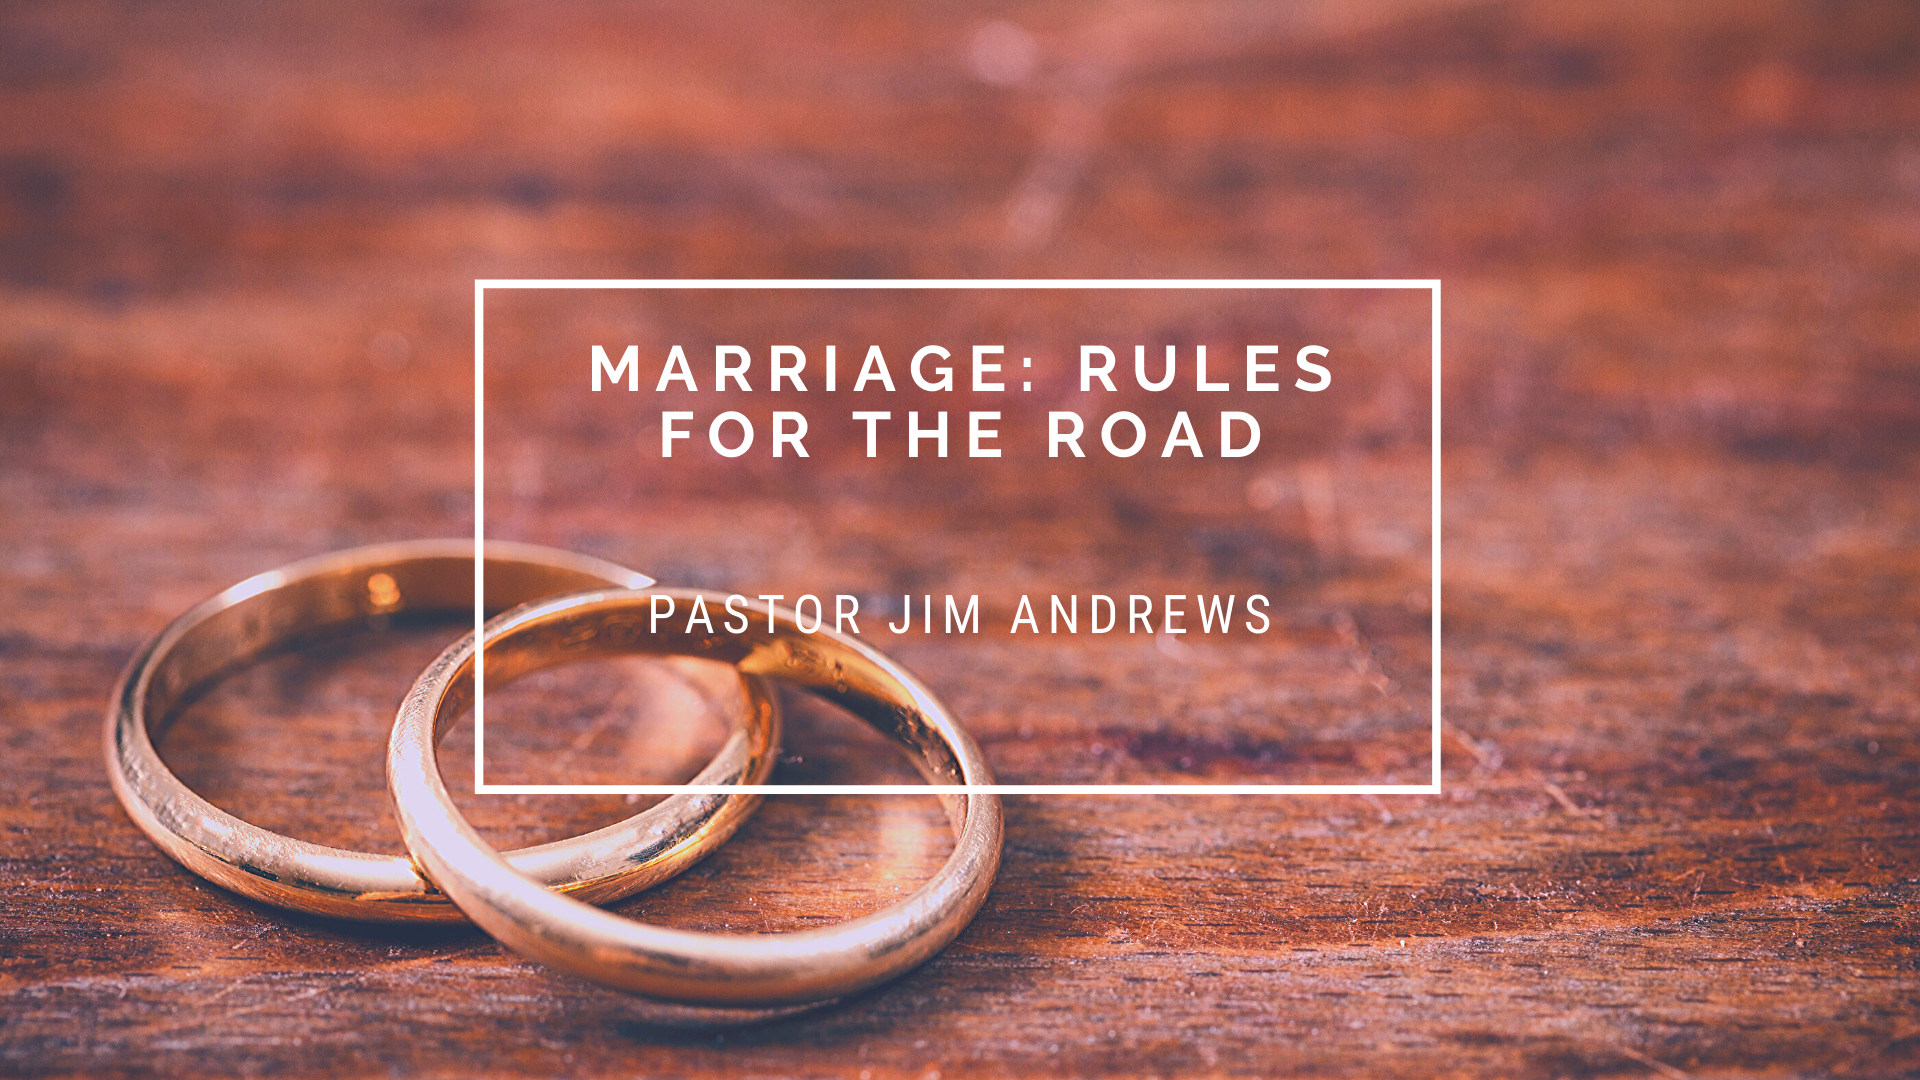 Marriage: Rules for the Road